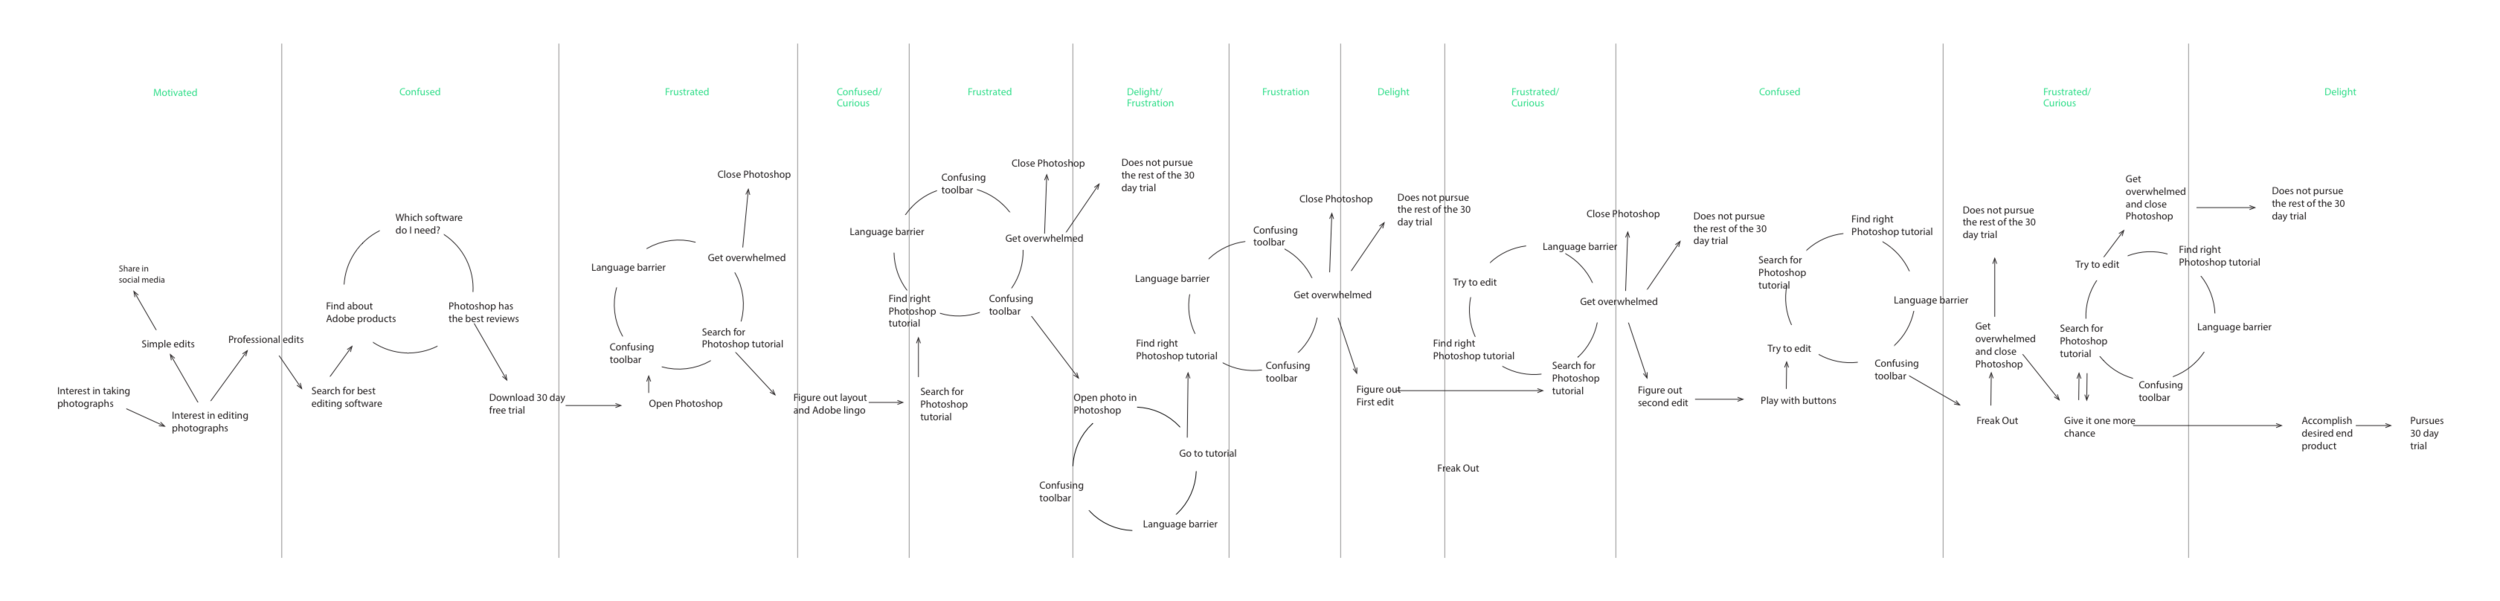 Photoshop Journey Map Test.png